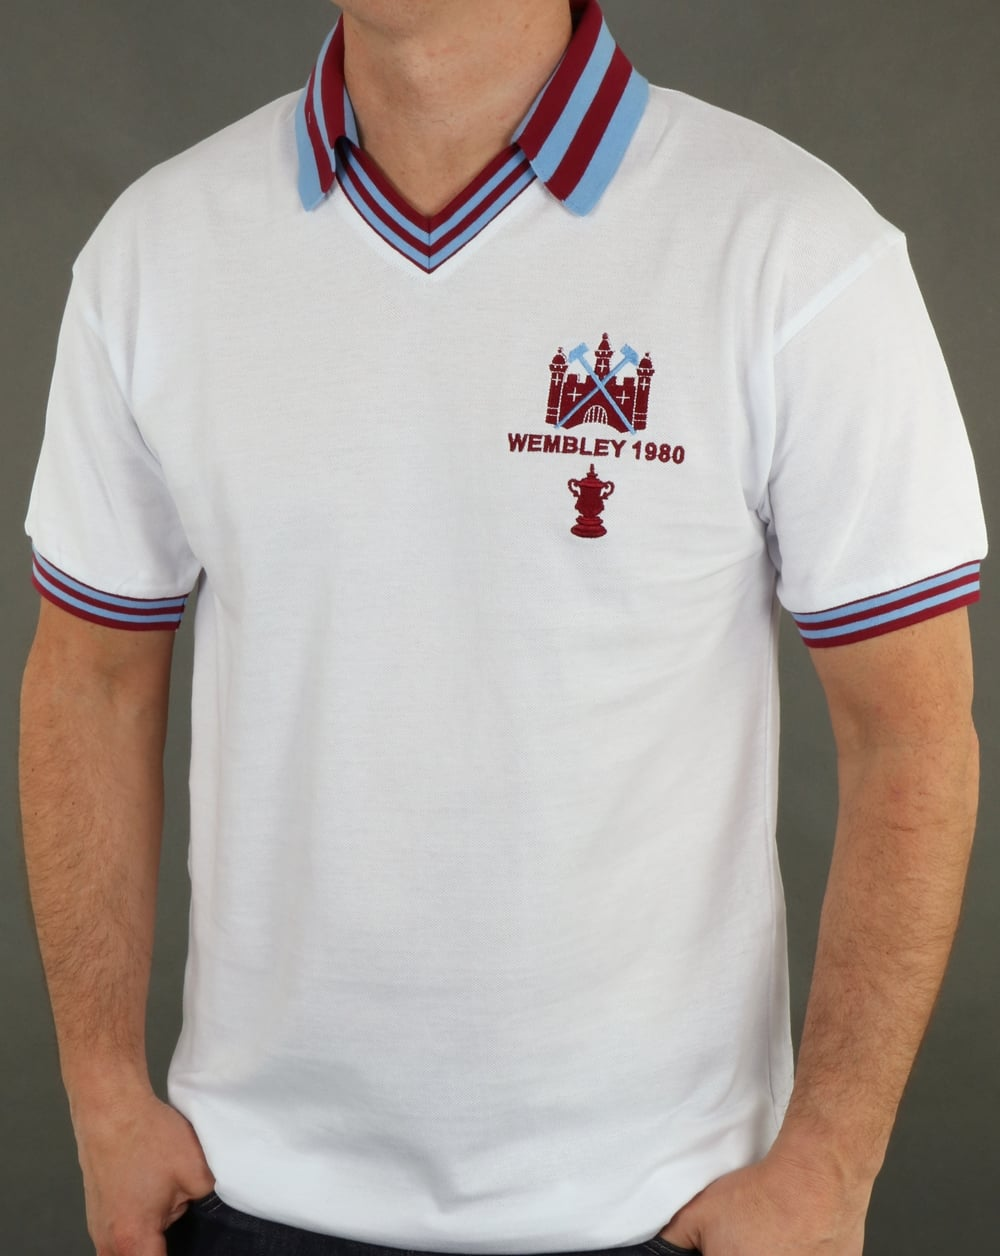 80s Casual Classics 80s Casual Classics West Ham 1980 FA Cup Final Retro  Football Shirt White 1855cc721